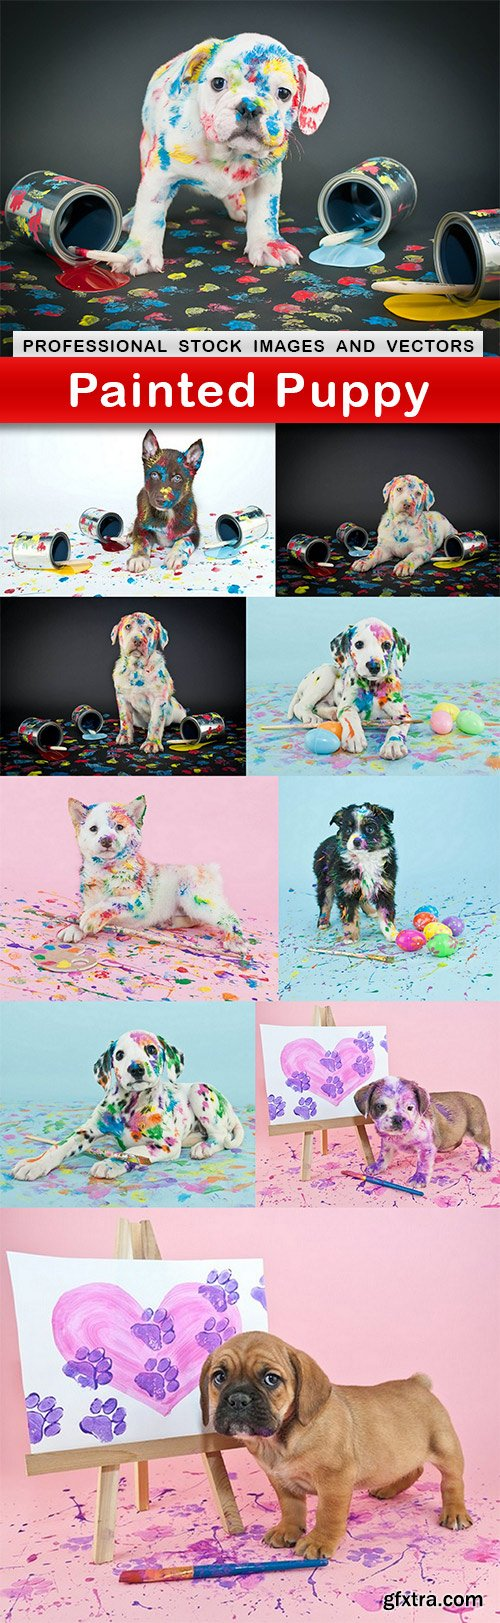 Painted Puppy - 10 UHQ JPEG